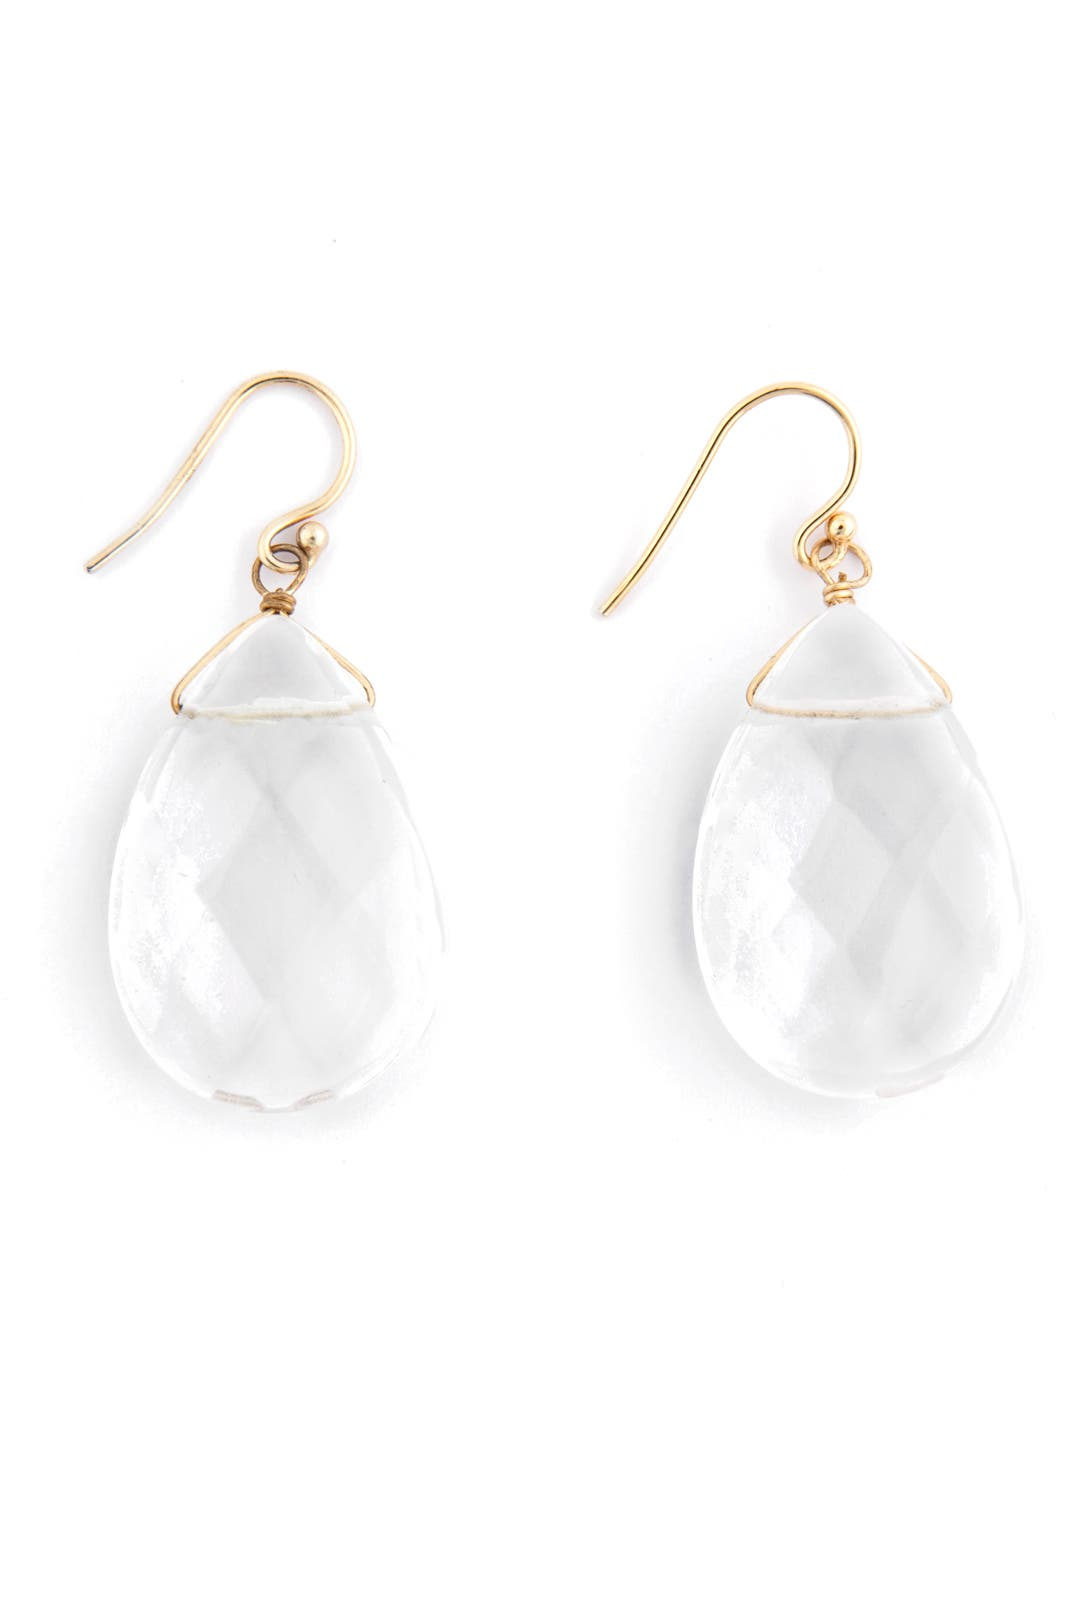 Crystal Teardrop Earrings by AV Max